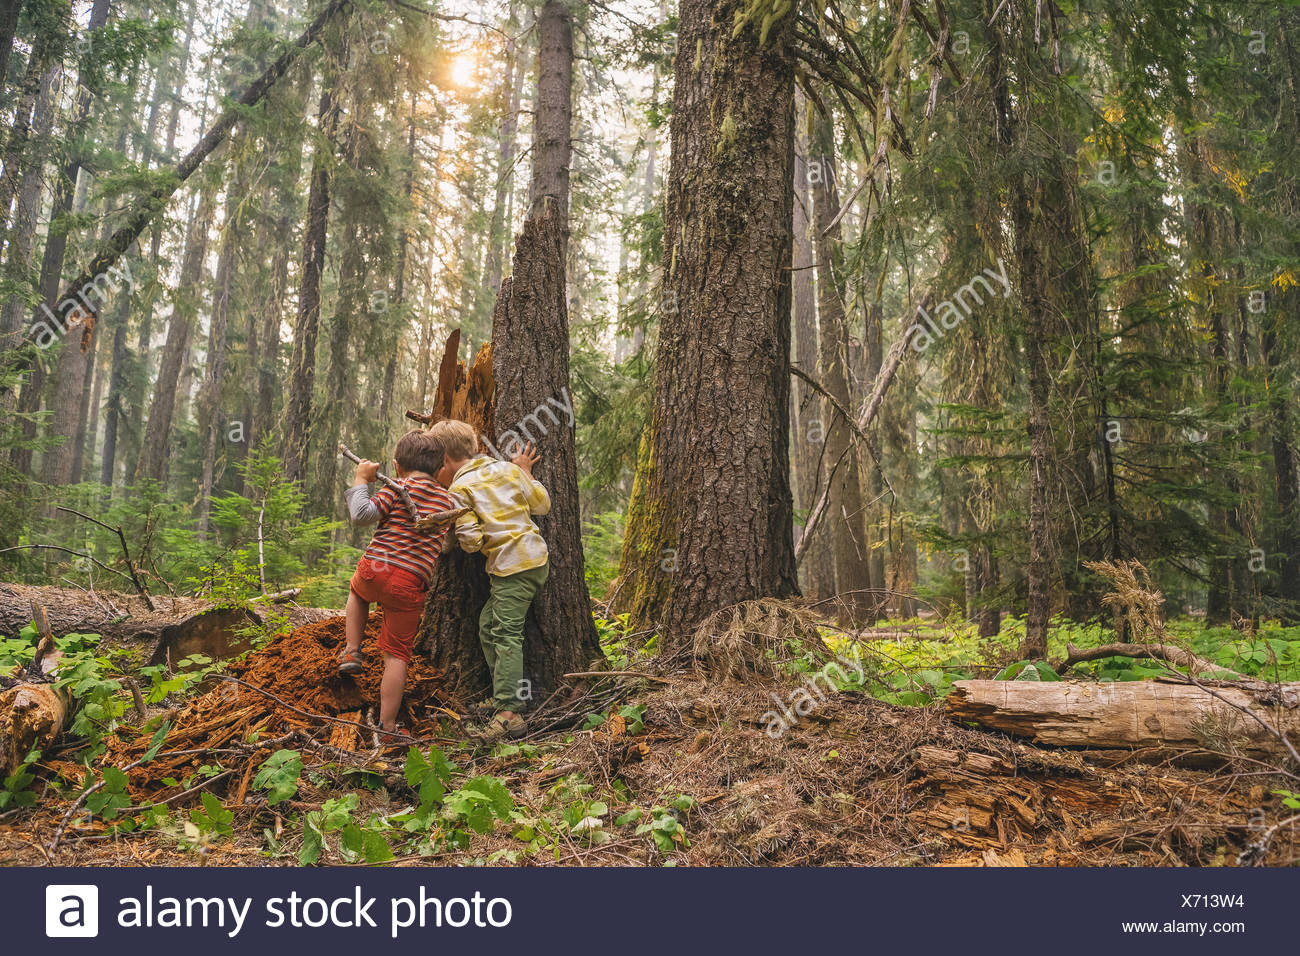 Two boys playing in the forest - Stock Image